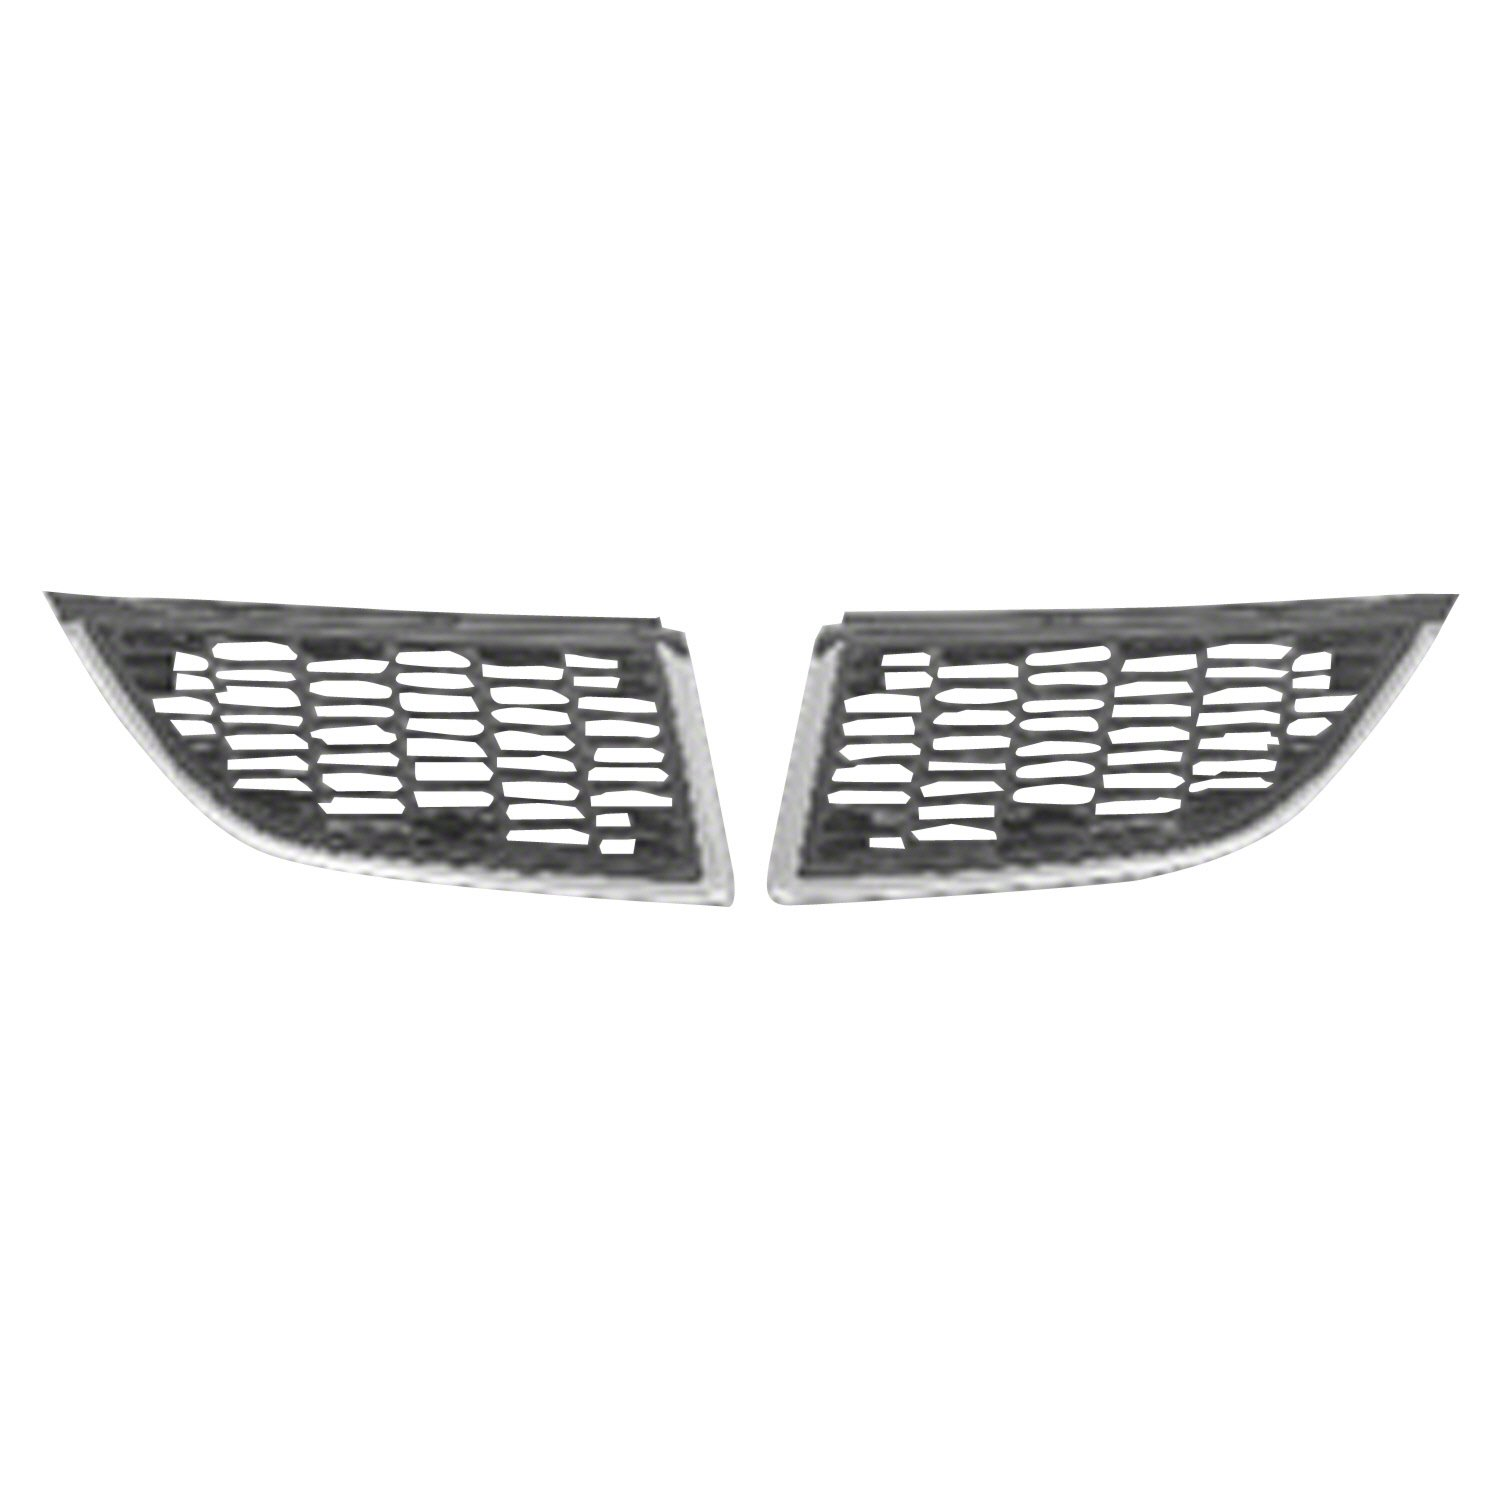 Cheap Mitsubishi Galant Timing Belt Find 1995 Chrysler Lebaron Kit Get Quotations Gray Front Grille Assembly For 2004 2006 Mi1200250